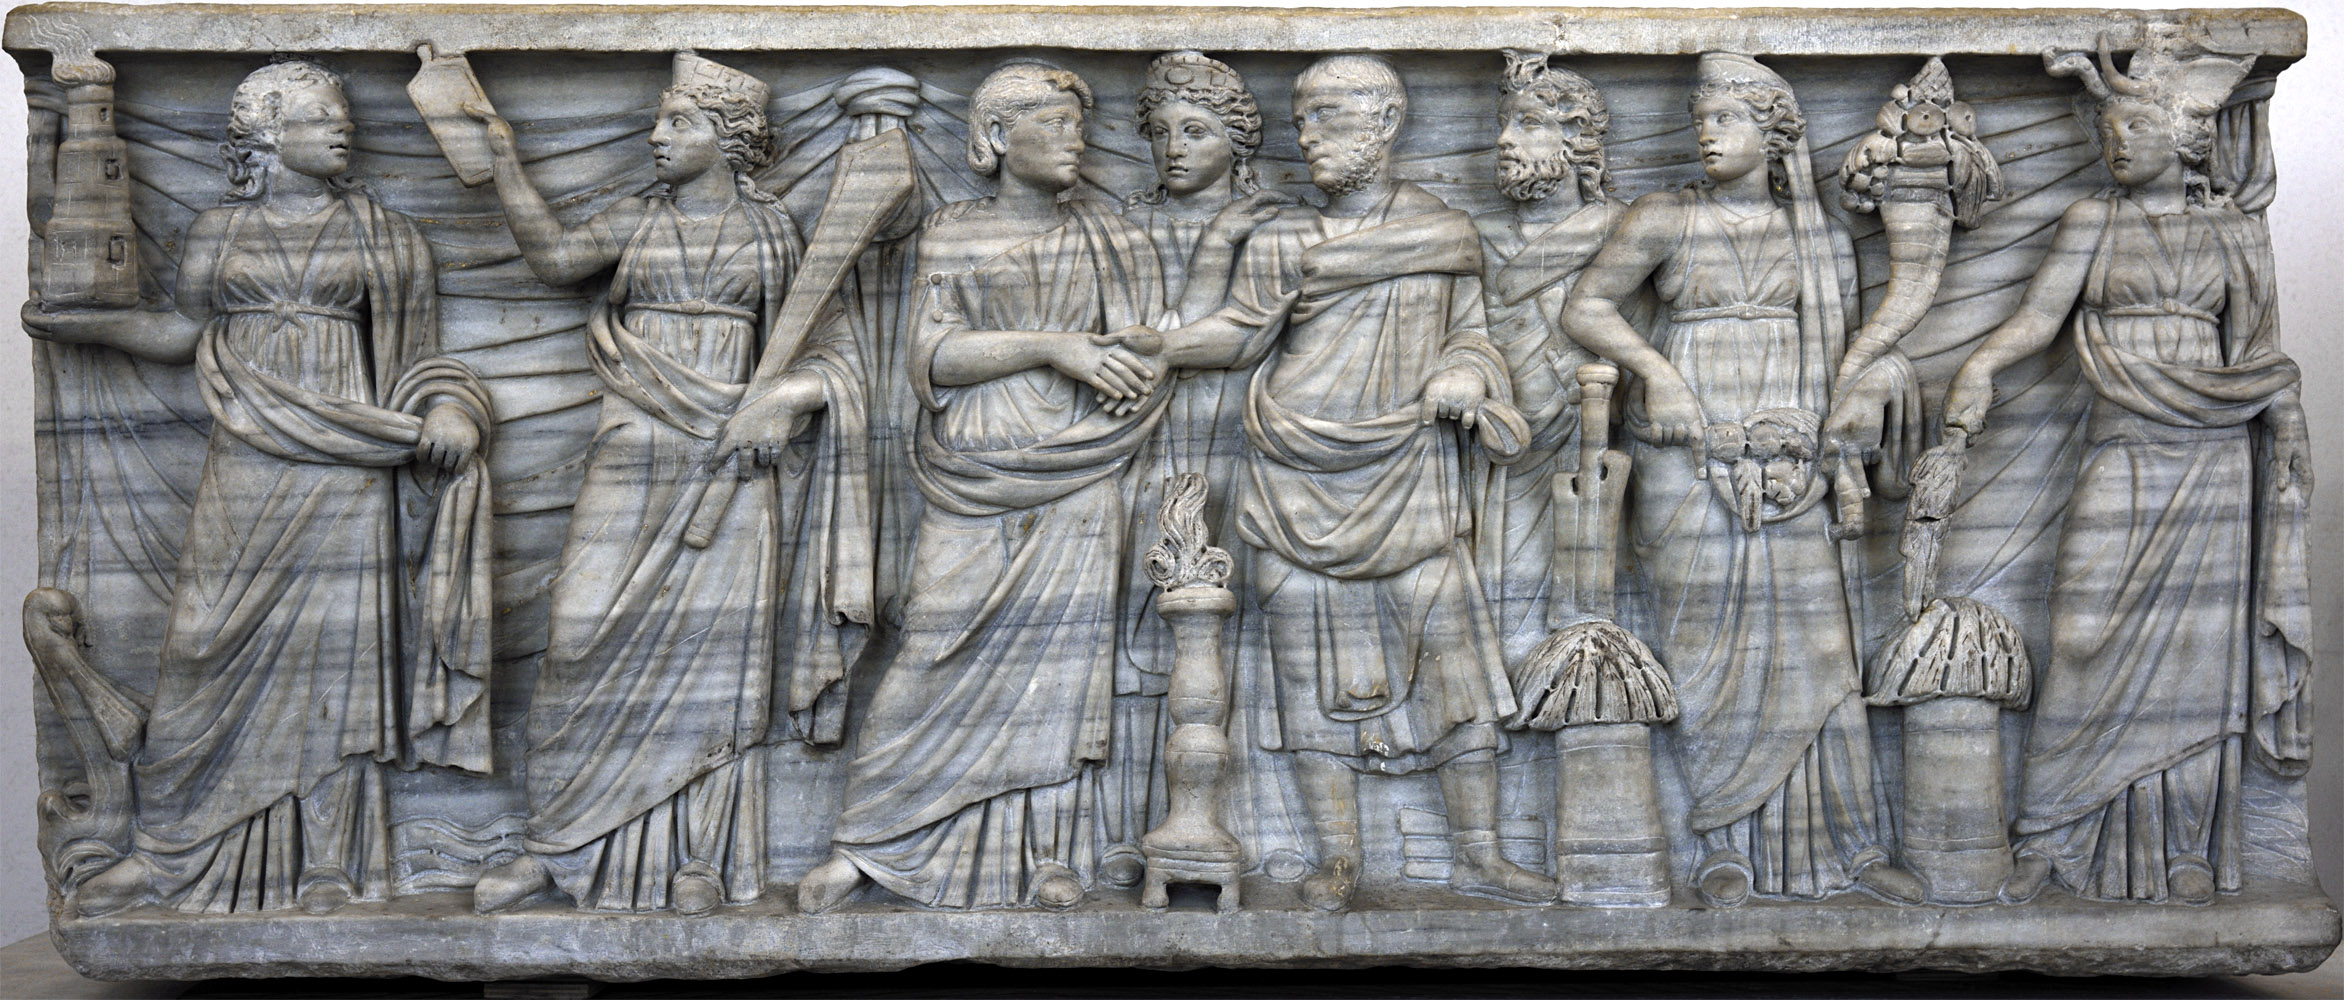 Sarcophagus of a married couple with personifications of Portus, Annona, Concordia, Genius Senati, Abundantia and Africa. Front panel. Marble. 270—280 CE. Rome, Roman National Museum, Palazzo Massimo alle Terme